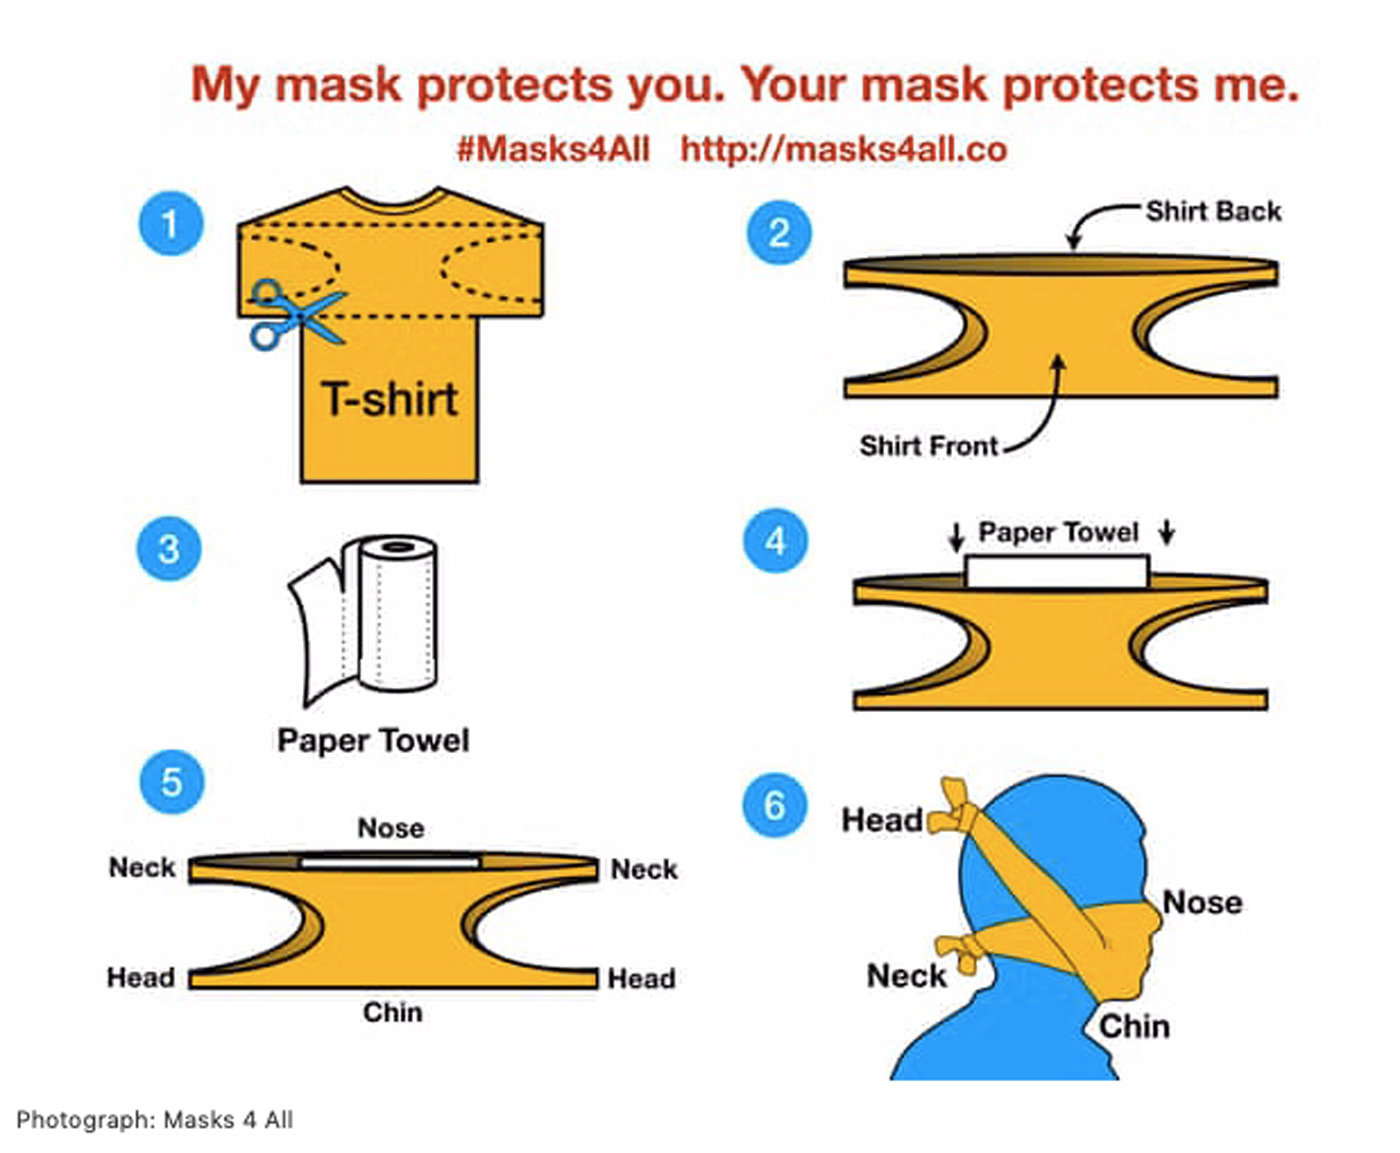 A simple mask can be made using a T-shirt and paper towel or coffee filter.